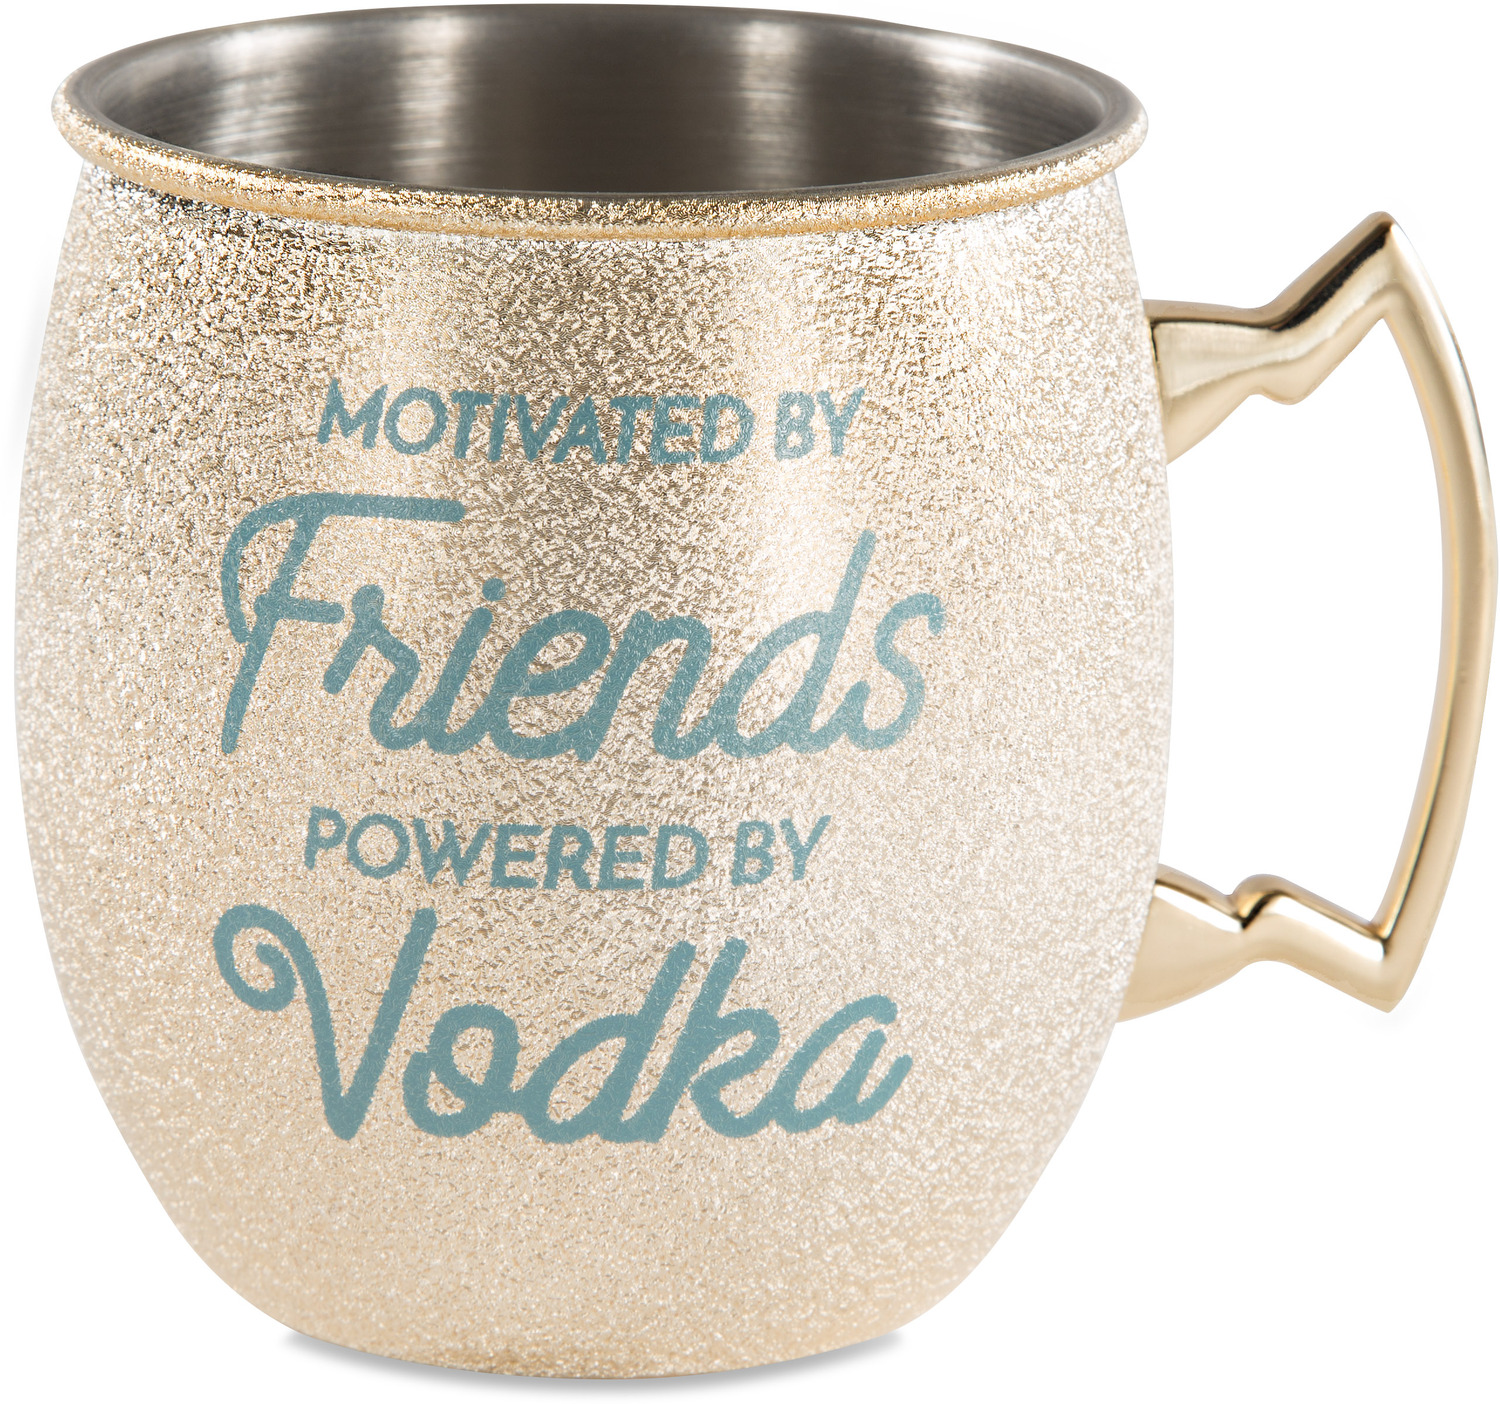 Friends and Vodka by My Kinda Girl - Friends and Vodka - 20 oz Stainless Steel Moscow Mule